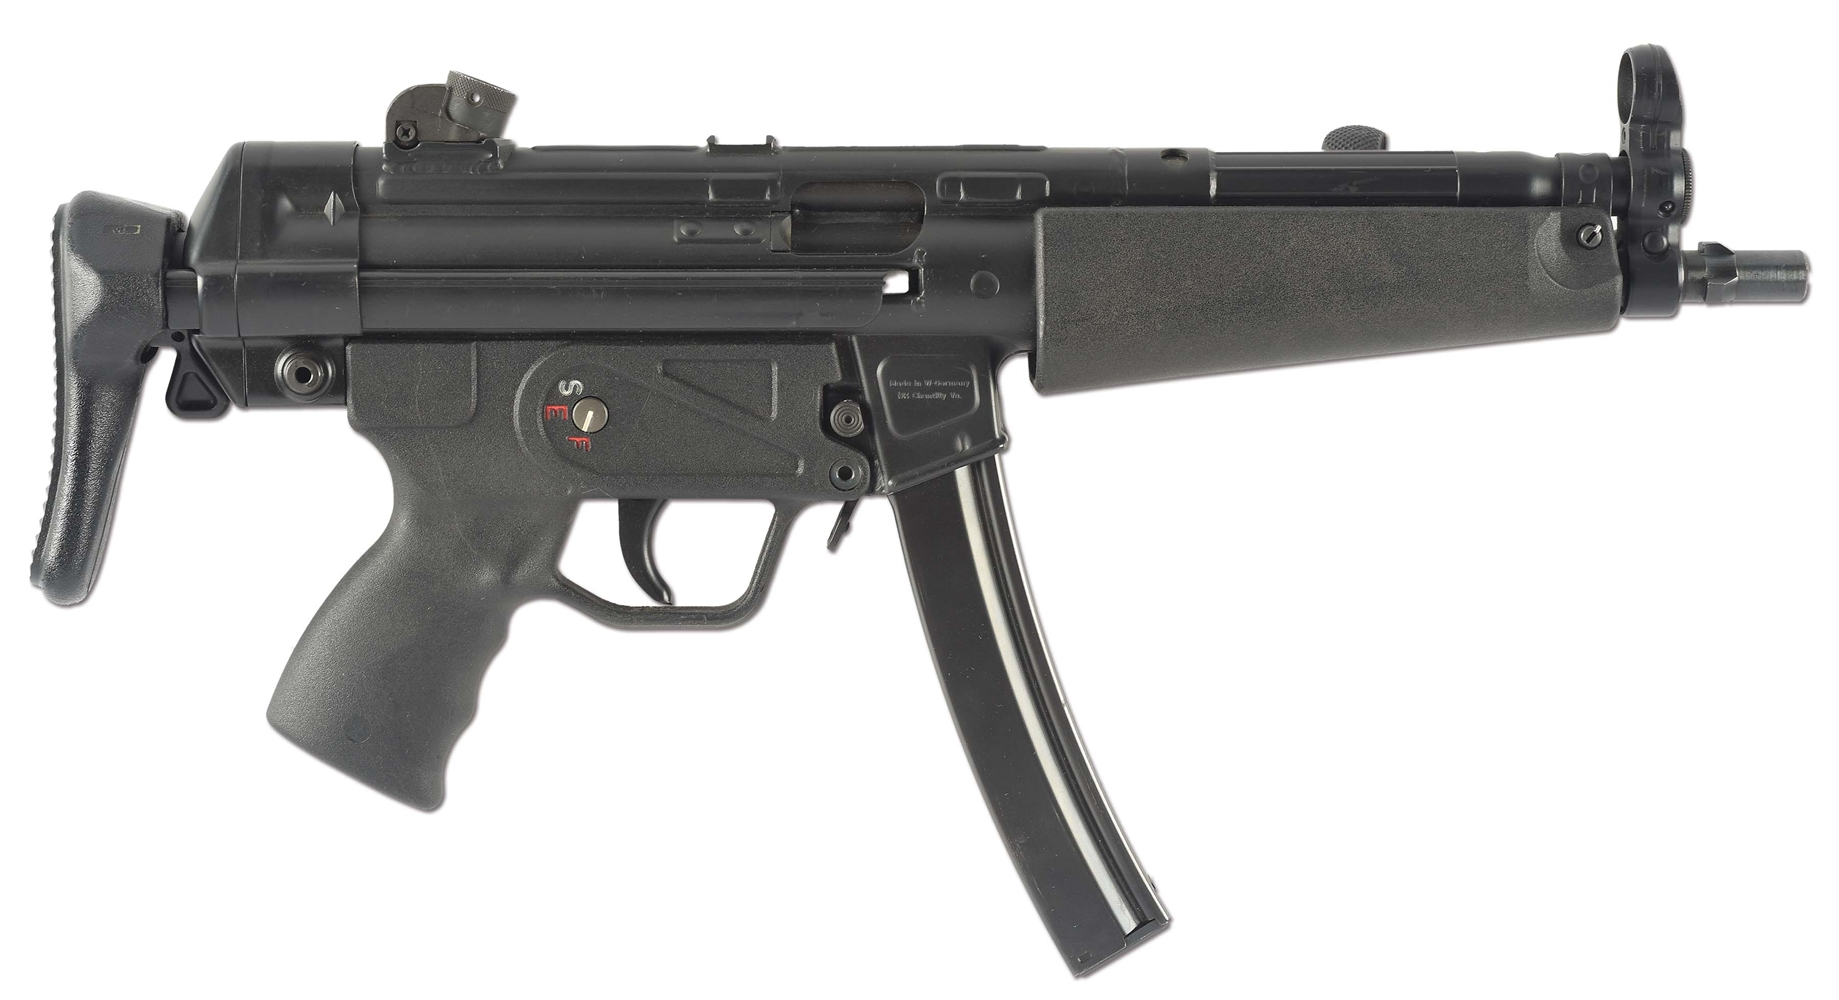 (N) VERY POPULAR FLEMING FIREARMS HECKLER & KOCH REGISTERED AUTO SEAR MACHINE GUN IN H&K HOST MP5 (FULLY TRANSFERABLE).